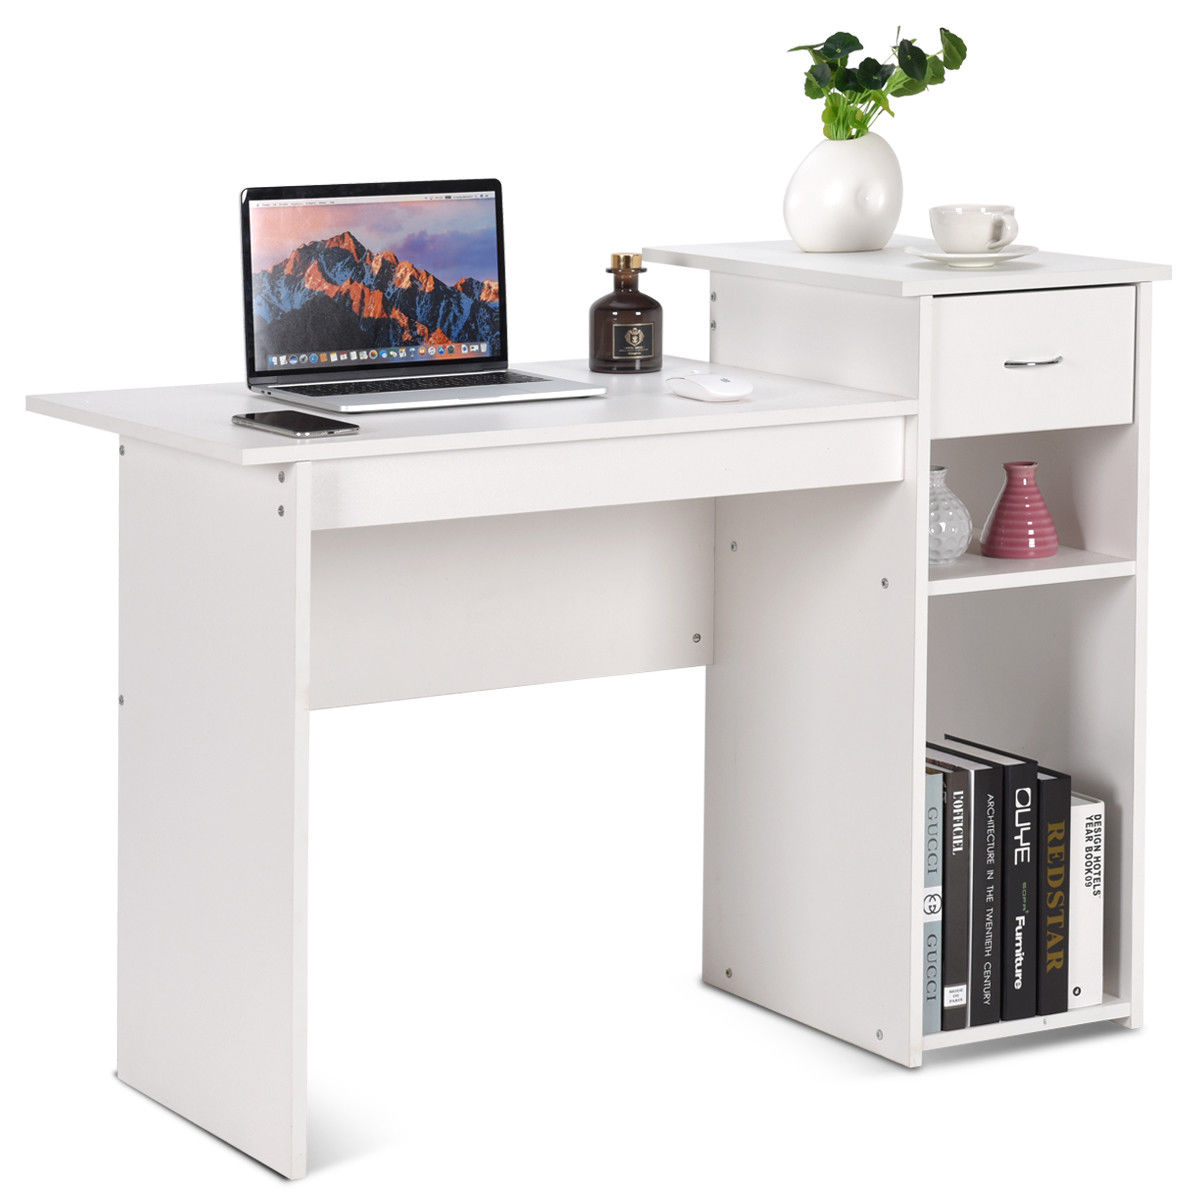 Costway Computer Desk PC Laptop Table W/ Drawer And Shelf Home Office Furniture White